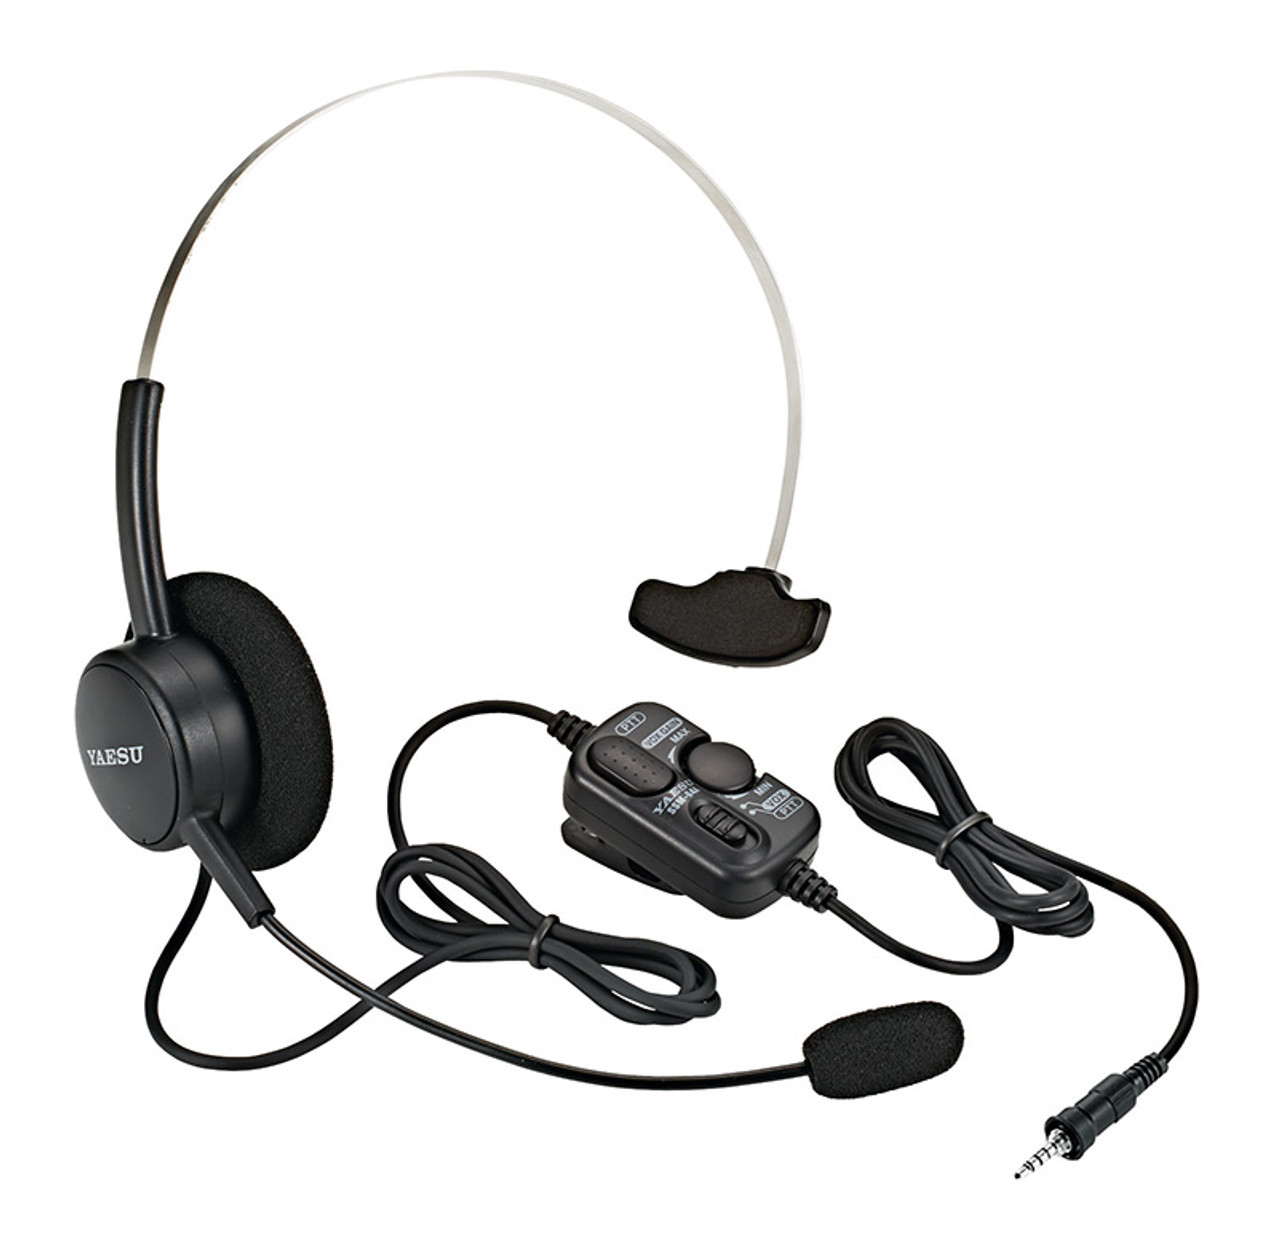 Standard Horizon SSM-64A Earpiece with Boom Mic - Voice Activated